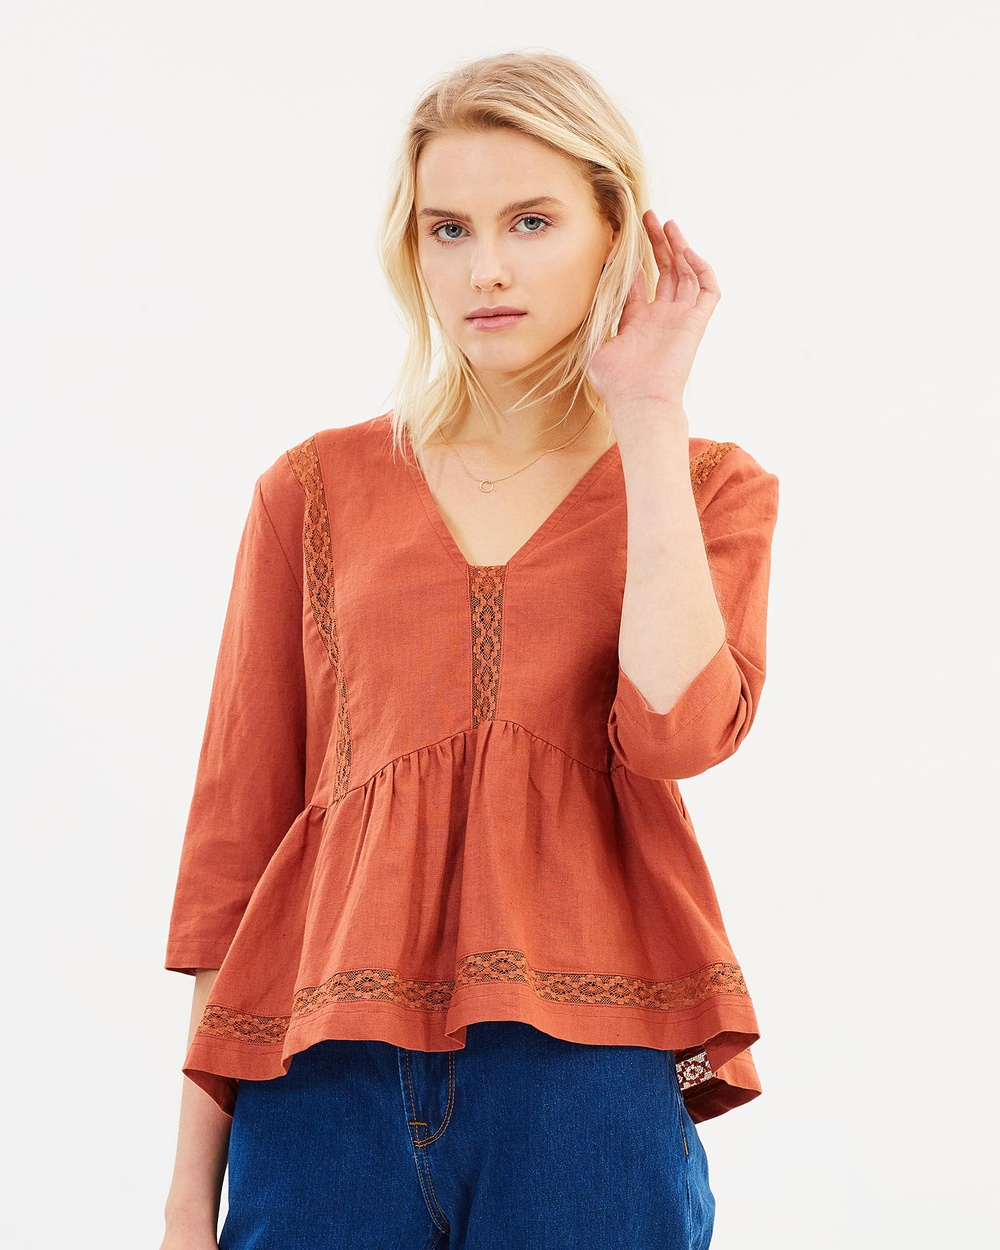 Ryder Emilia Linen Top Tops Rust Emilia Linen Top